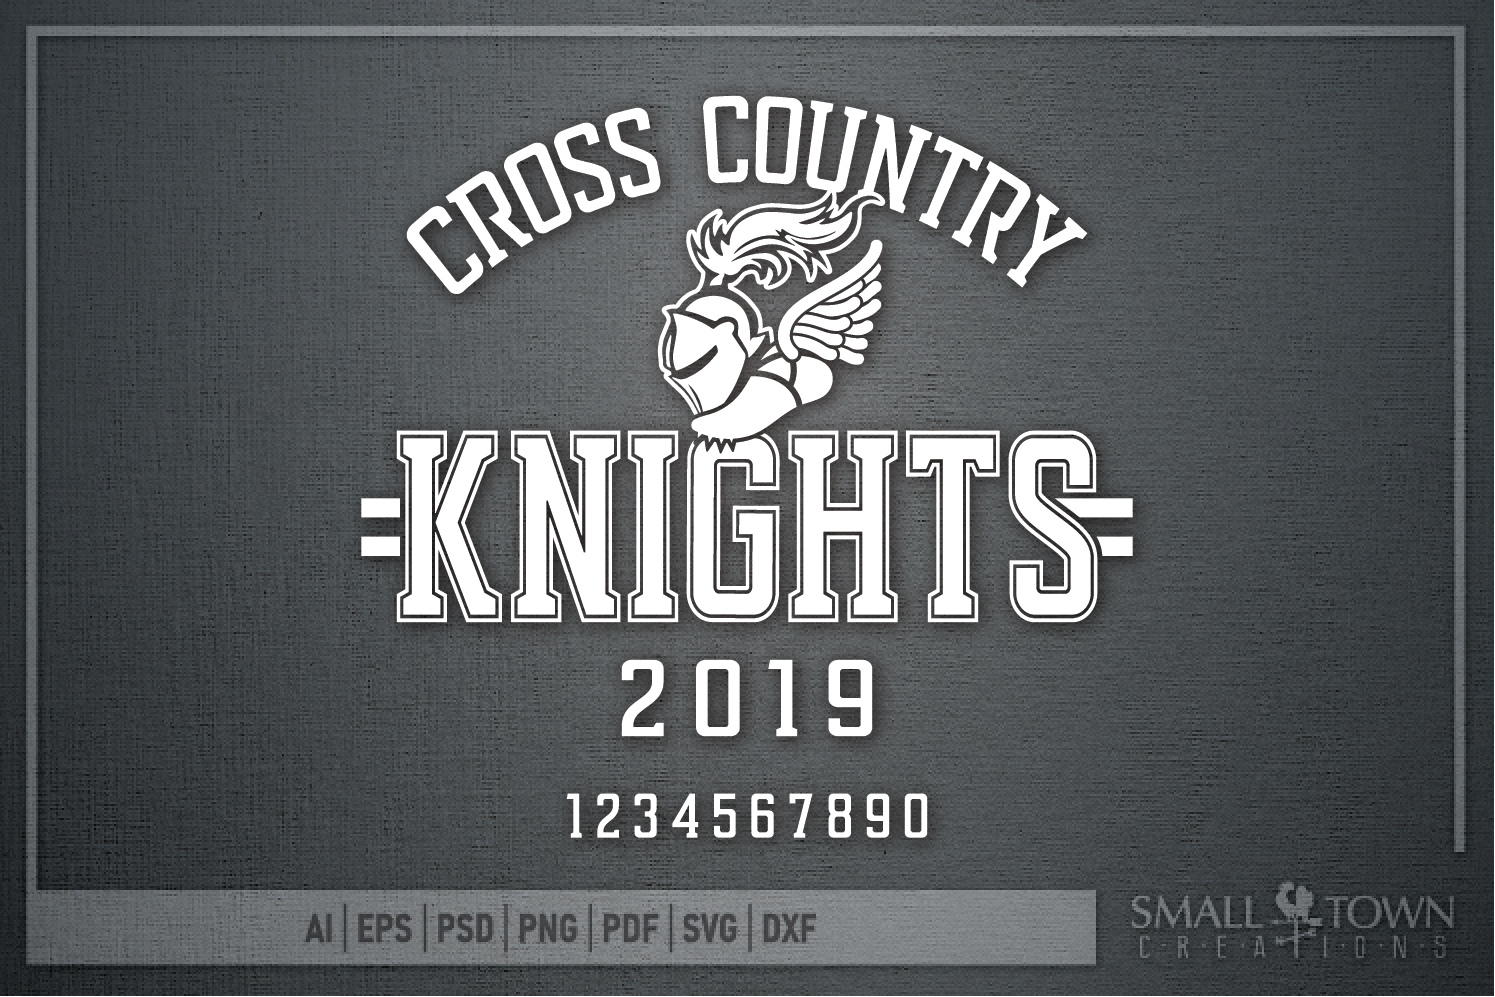 Knight Cross Country, Knights mascot, PRINT, CUT, DESIGN example image 5